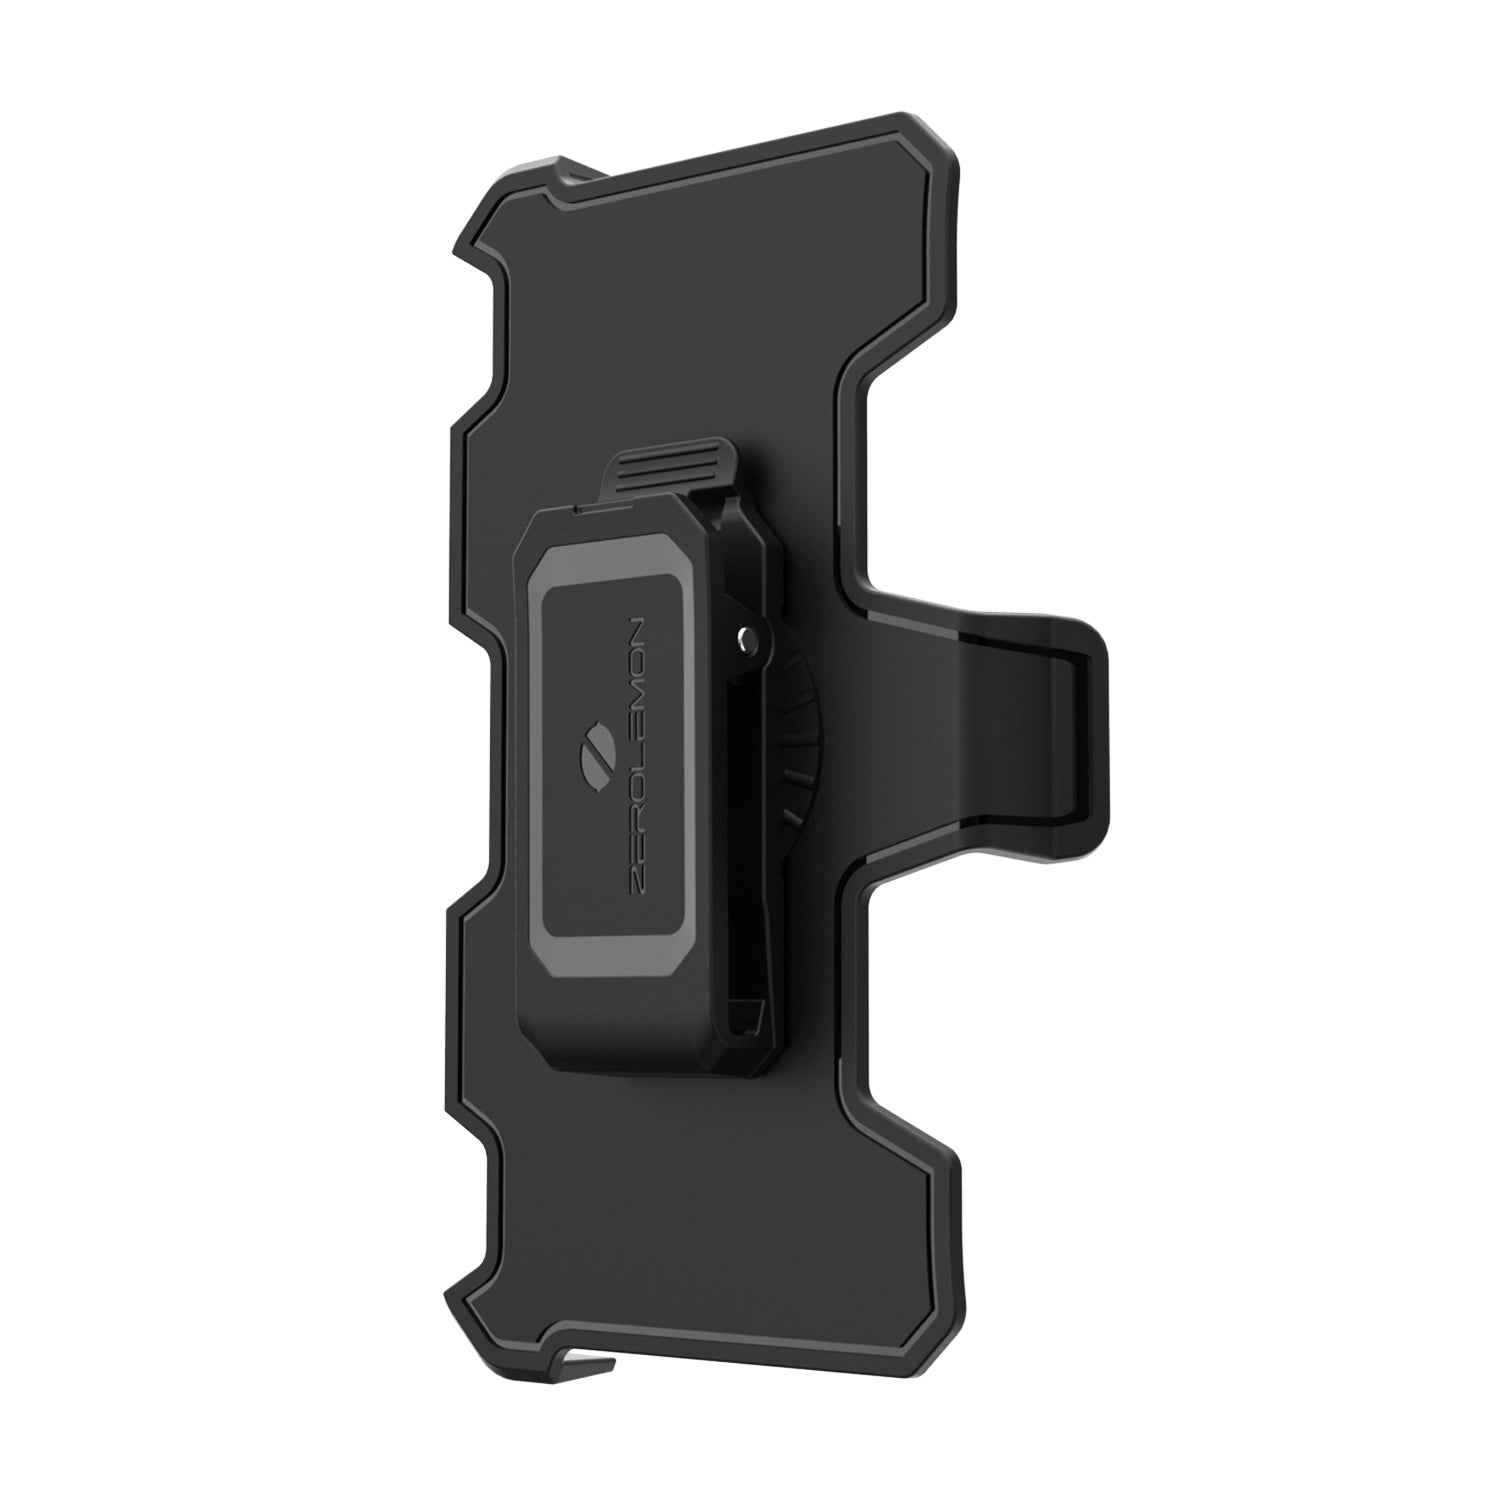 Belt Clip Holster for ZeroLemon iPhone 11 Pro Max 10000mAh RuggedJuicer Battery Case